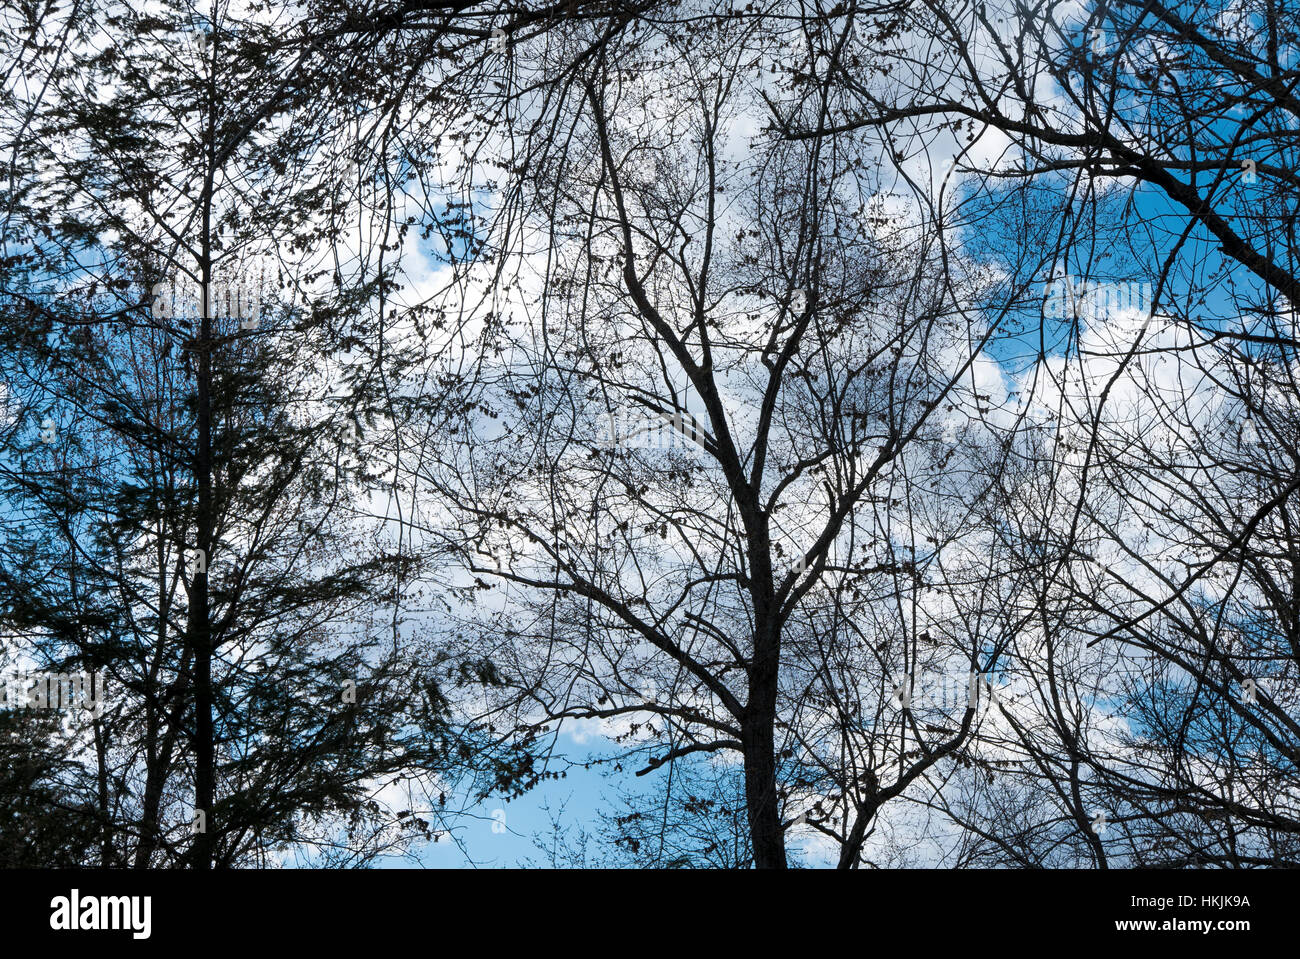 Trees, clouds, sky. - Stock Image